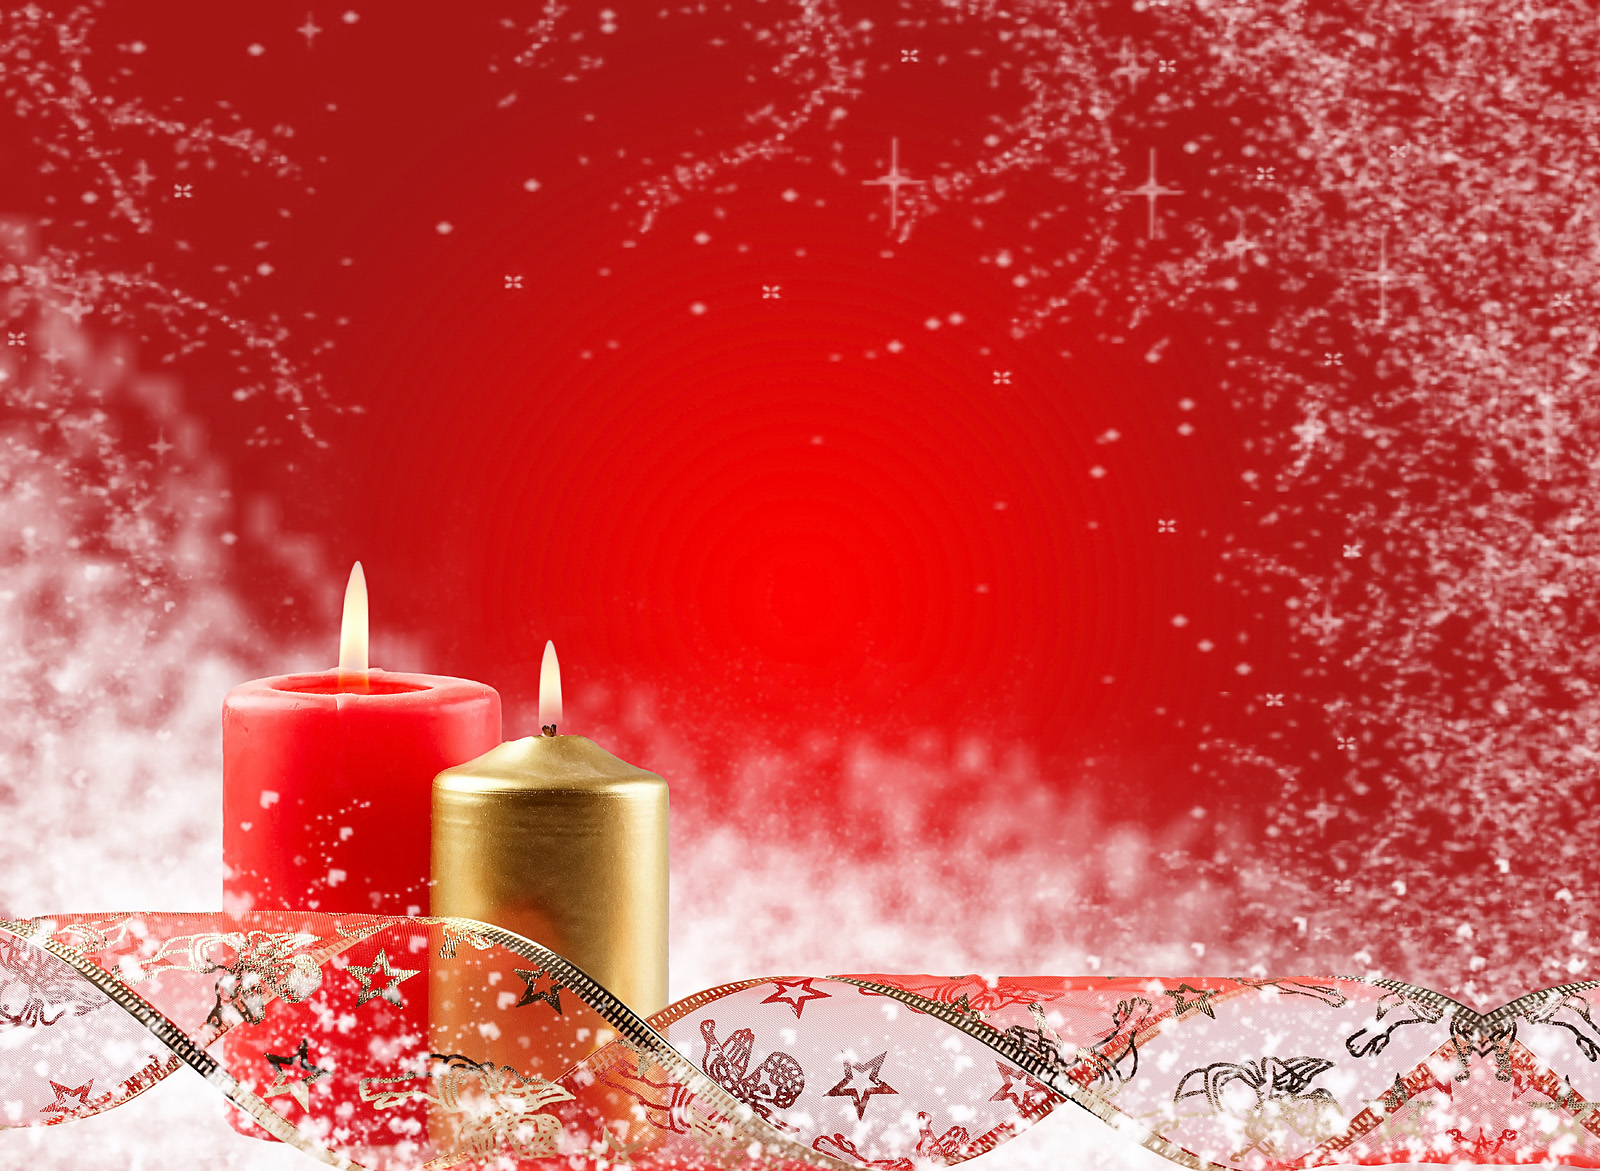 Christmas Backgrounds Wallpapers9 1600x1171